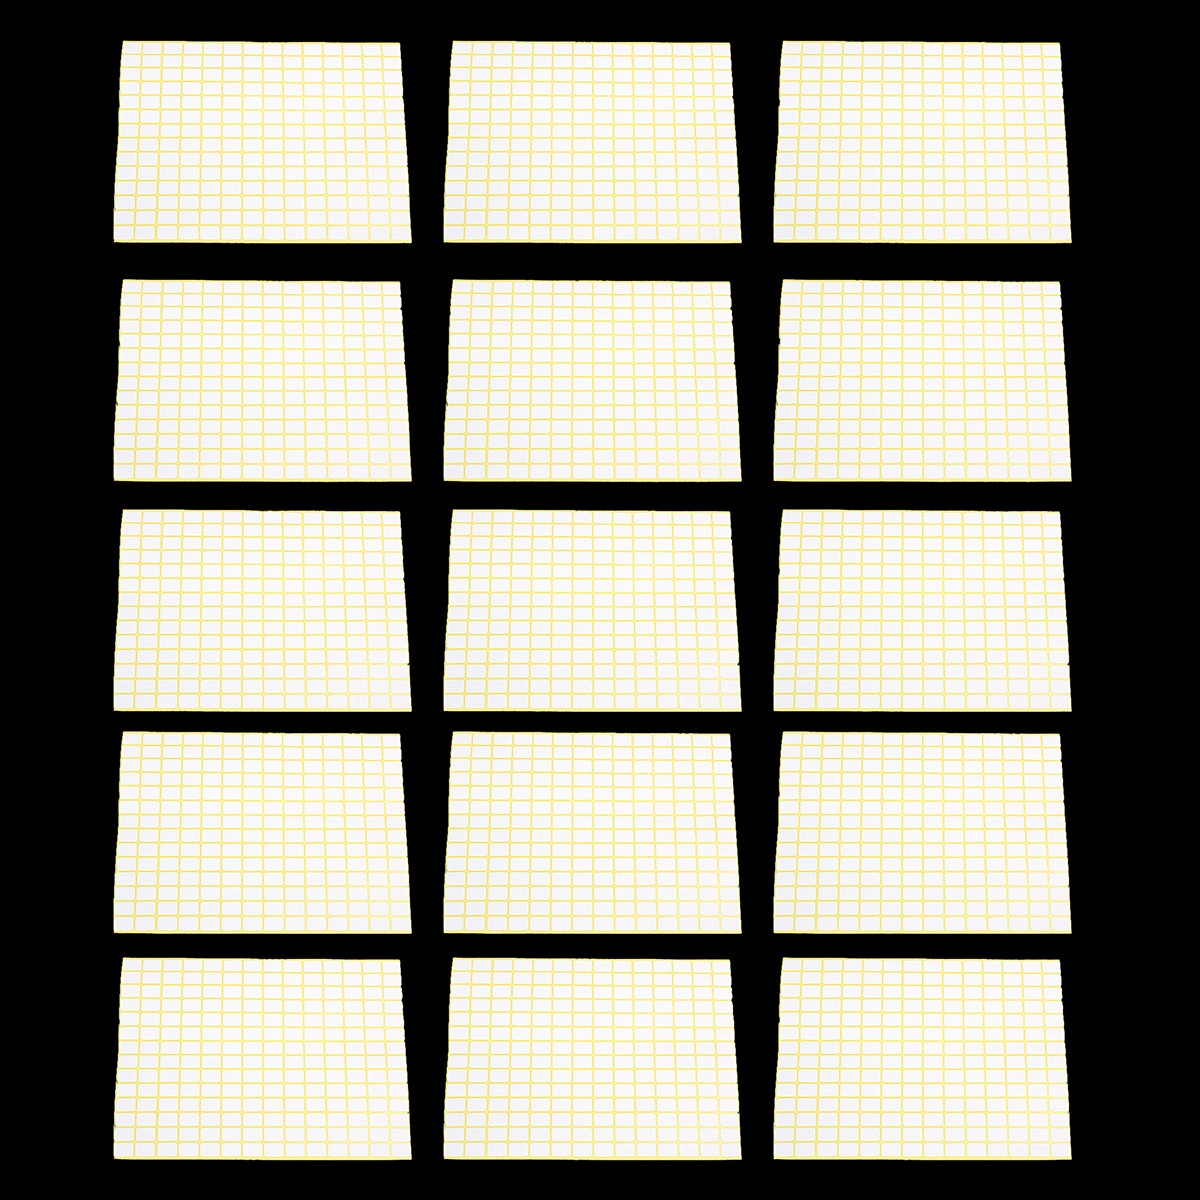 196Pcs/Sheet Blank Sticky Labels 9 x13MM White Price Stickers Tags 15 Sheets